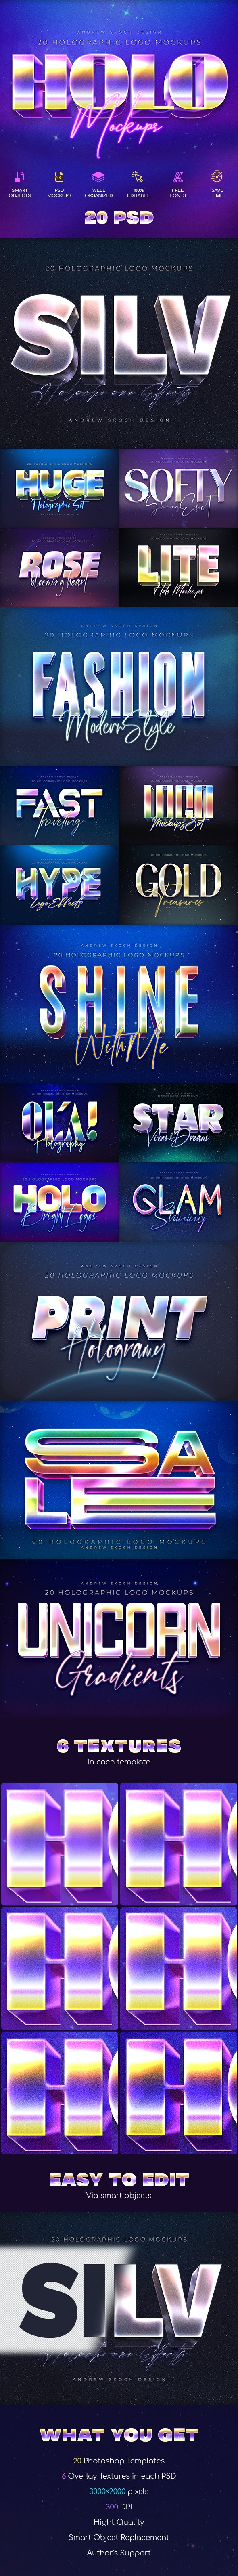 20 Holographic Text Effects - Text Effects Actions